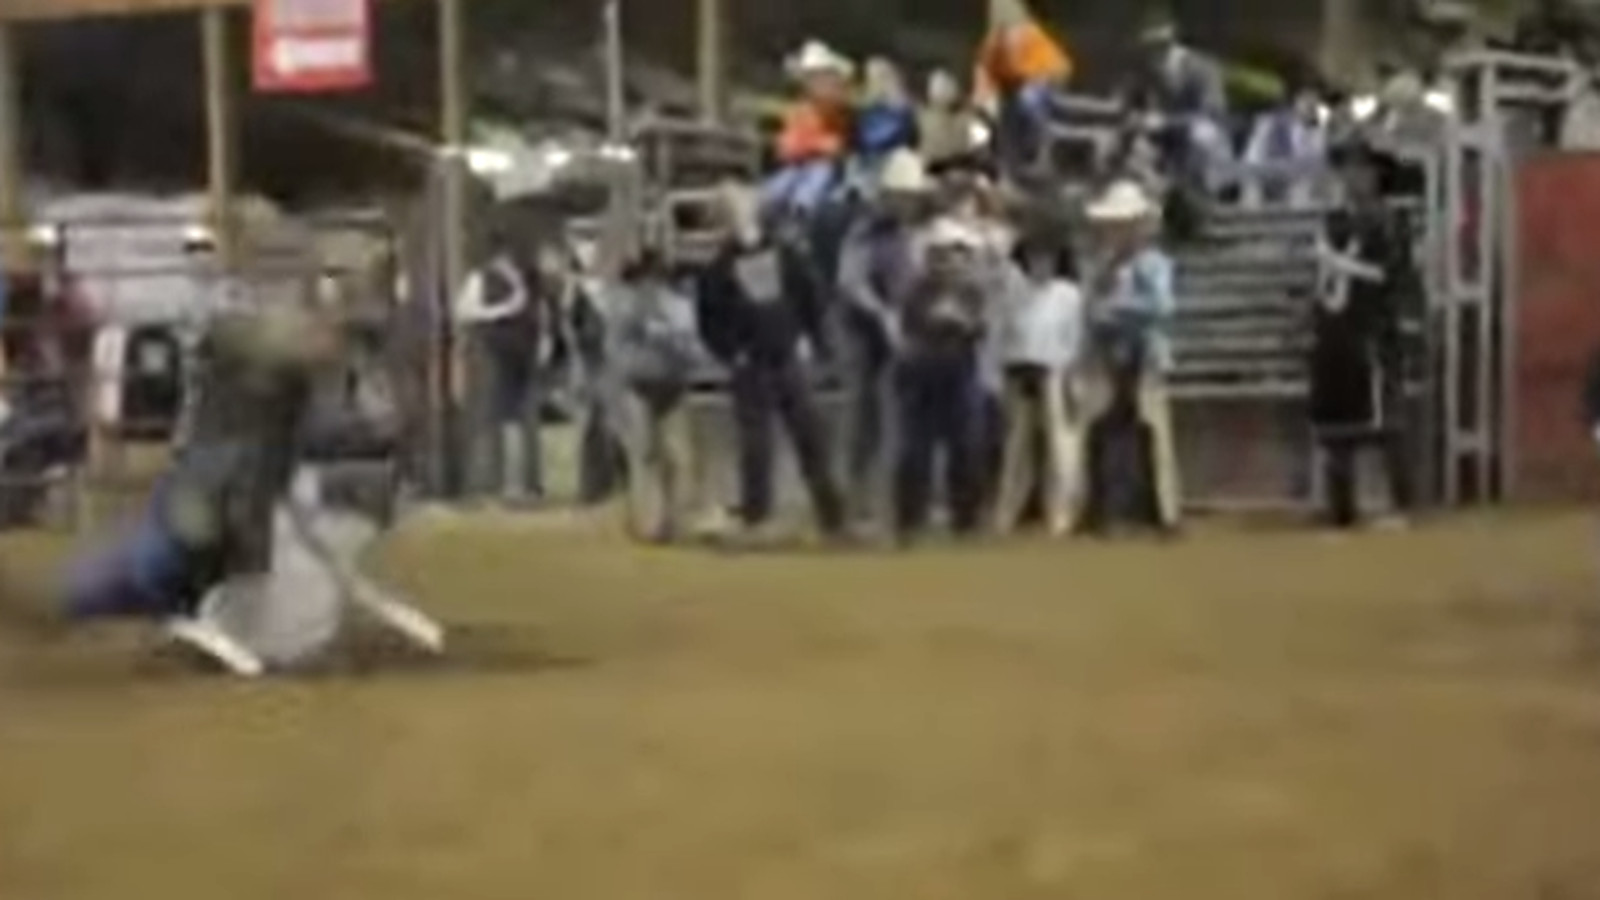 Musical chairs gif - Playing Musical Chairs At A Rodeo Is Hazardous To Your Health Sbnation Com